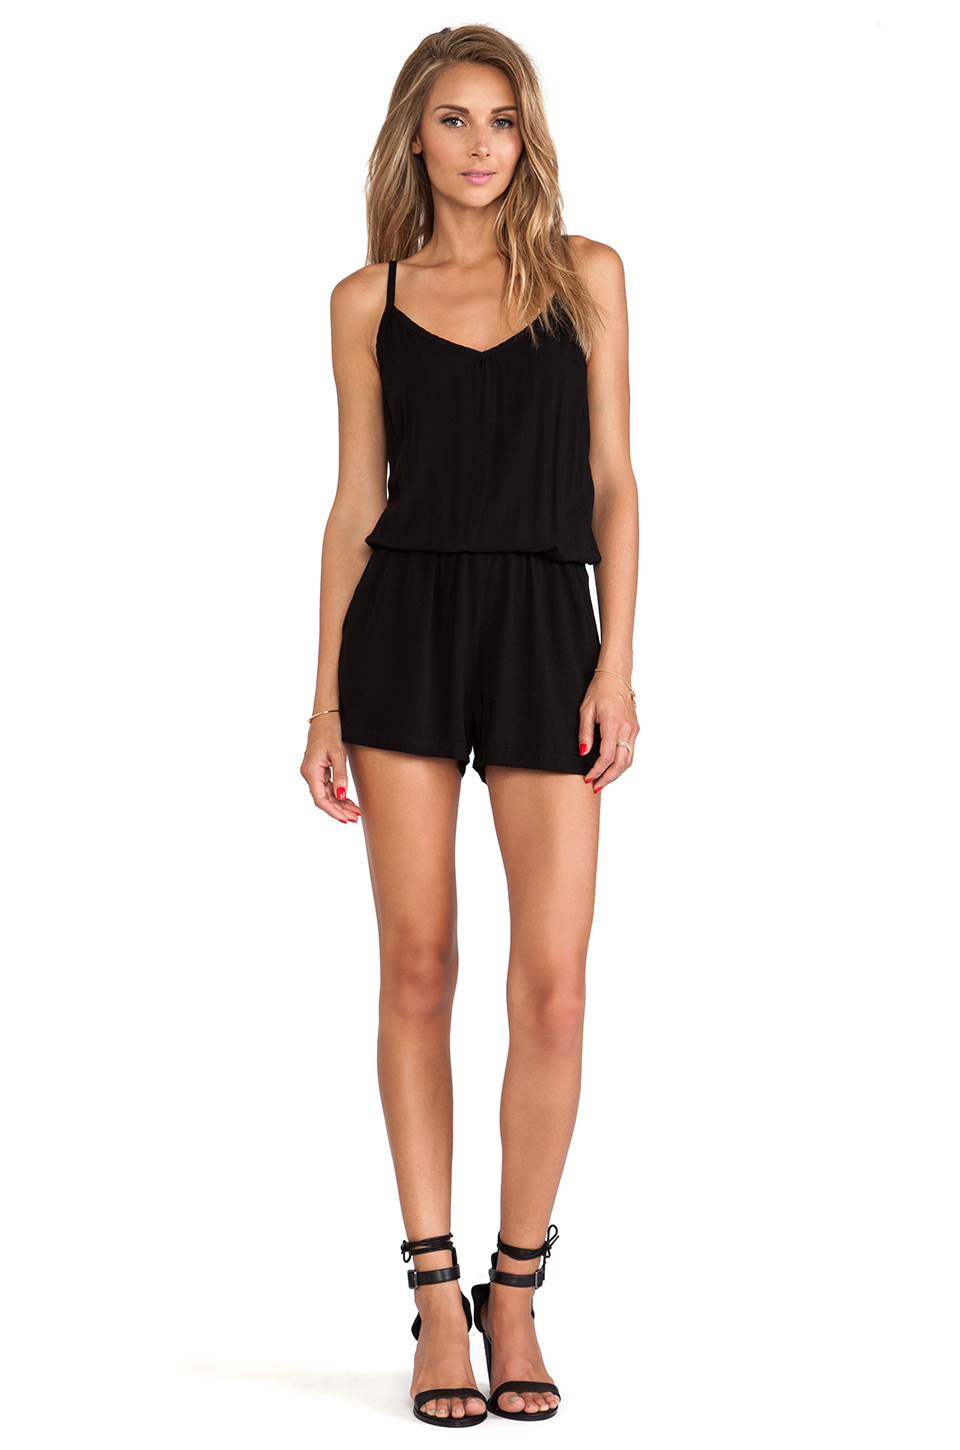 Splendid Romper in Black | REVOLVE